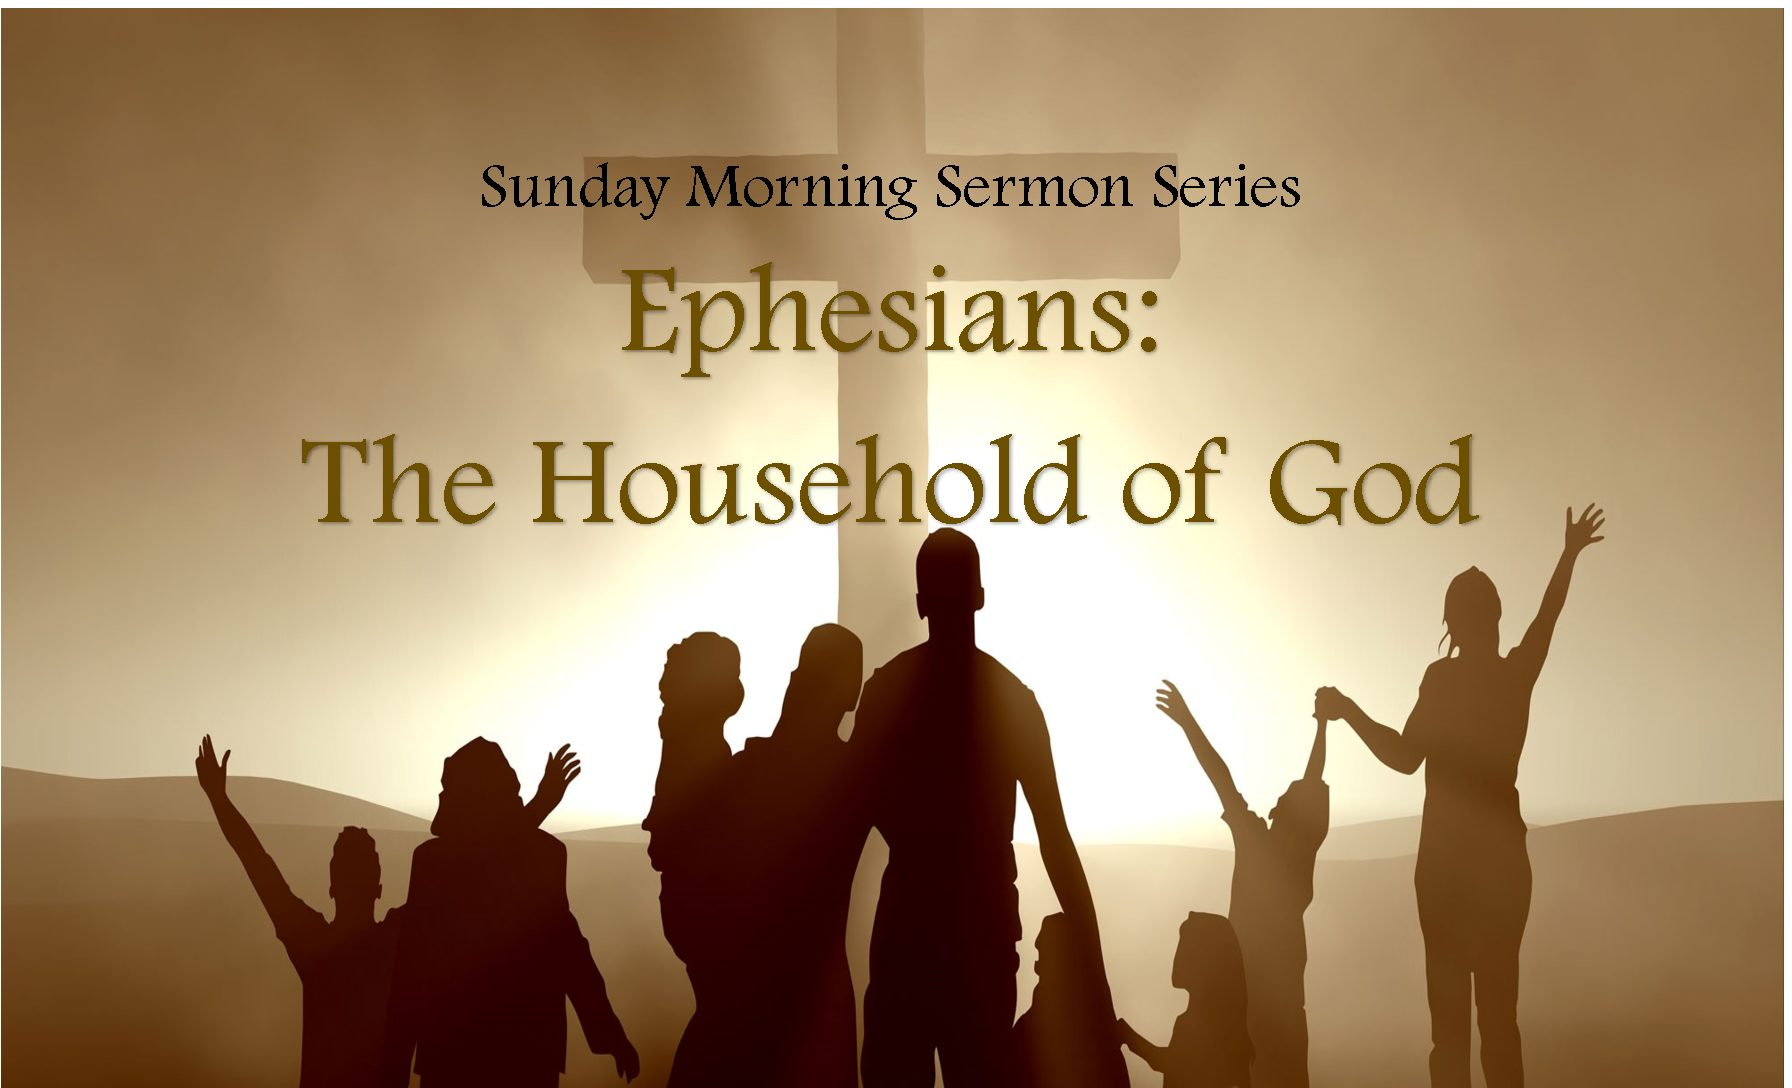 The Household of God: A Grand Greeting